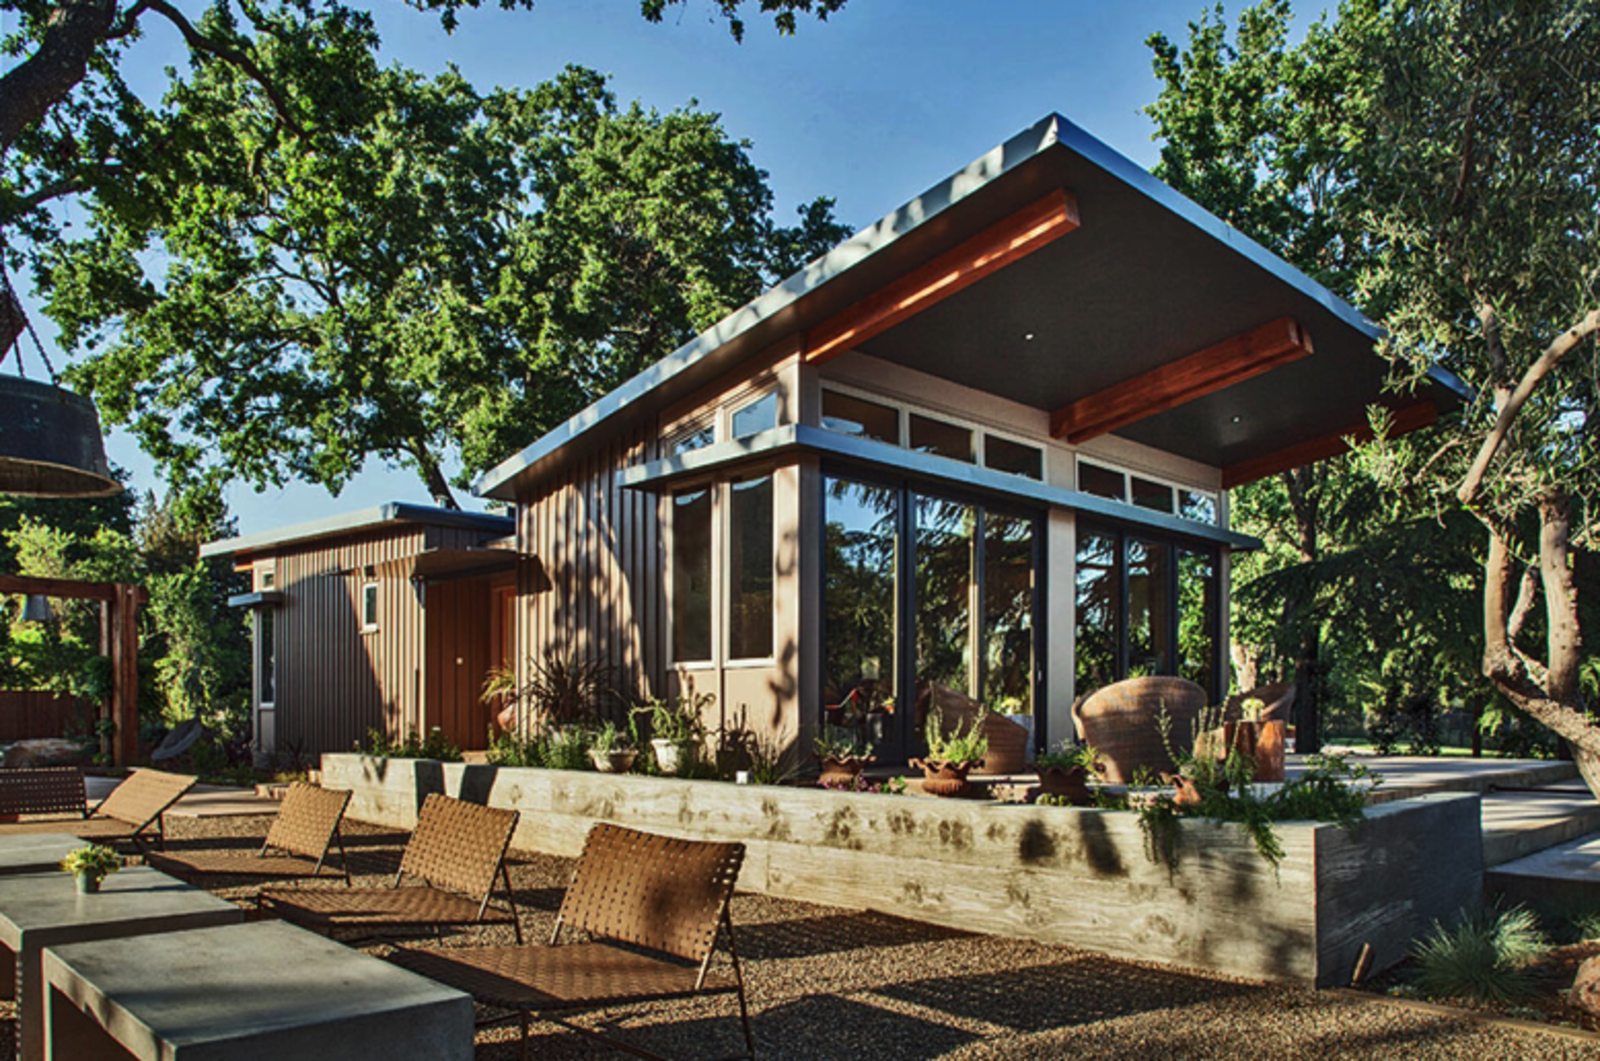 While sustainability, ease of construction, and affordability are priorities for most kit home companies, not all are as concerned with aesthetics. Stillwater Dwellings, which has participated in both the 2013 and 2014 Dwell on Design exhibitions, puts a distinct emphasis on natural lighting, intelligent floor plans, and high-quality craftsmanship to ensure innovative, modern designs.  Photo 6 of 7 in 7 Prefab Companies That Oregon Dwellers Should Know from 8 Companies That Are Revolutionizing Kit Homes